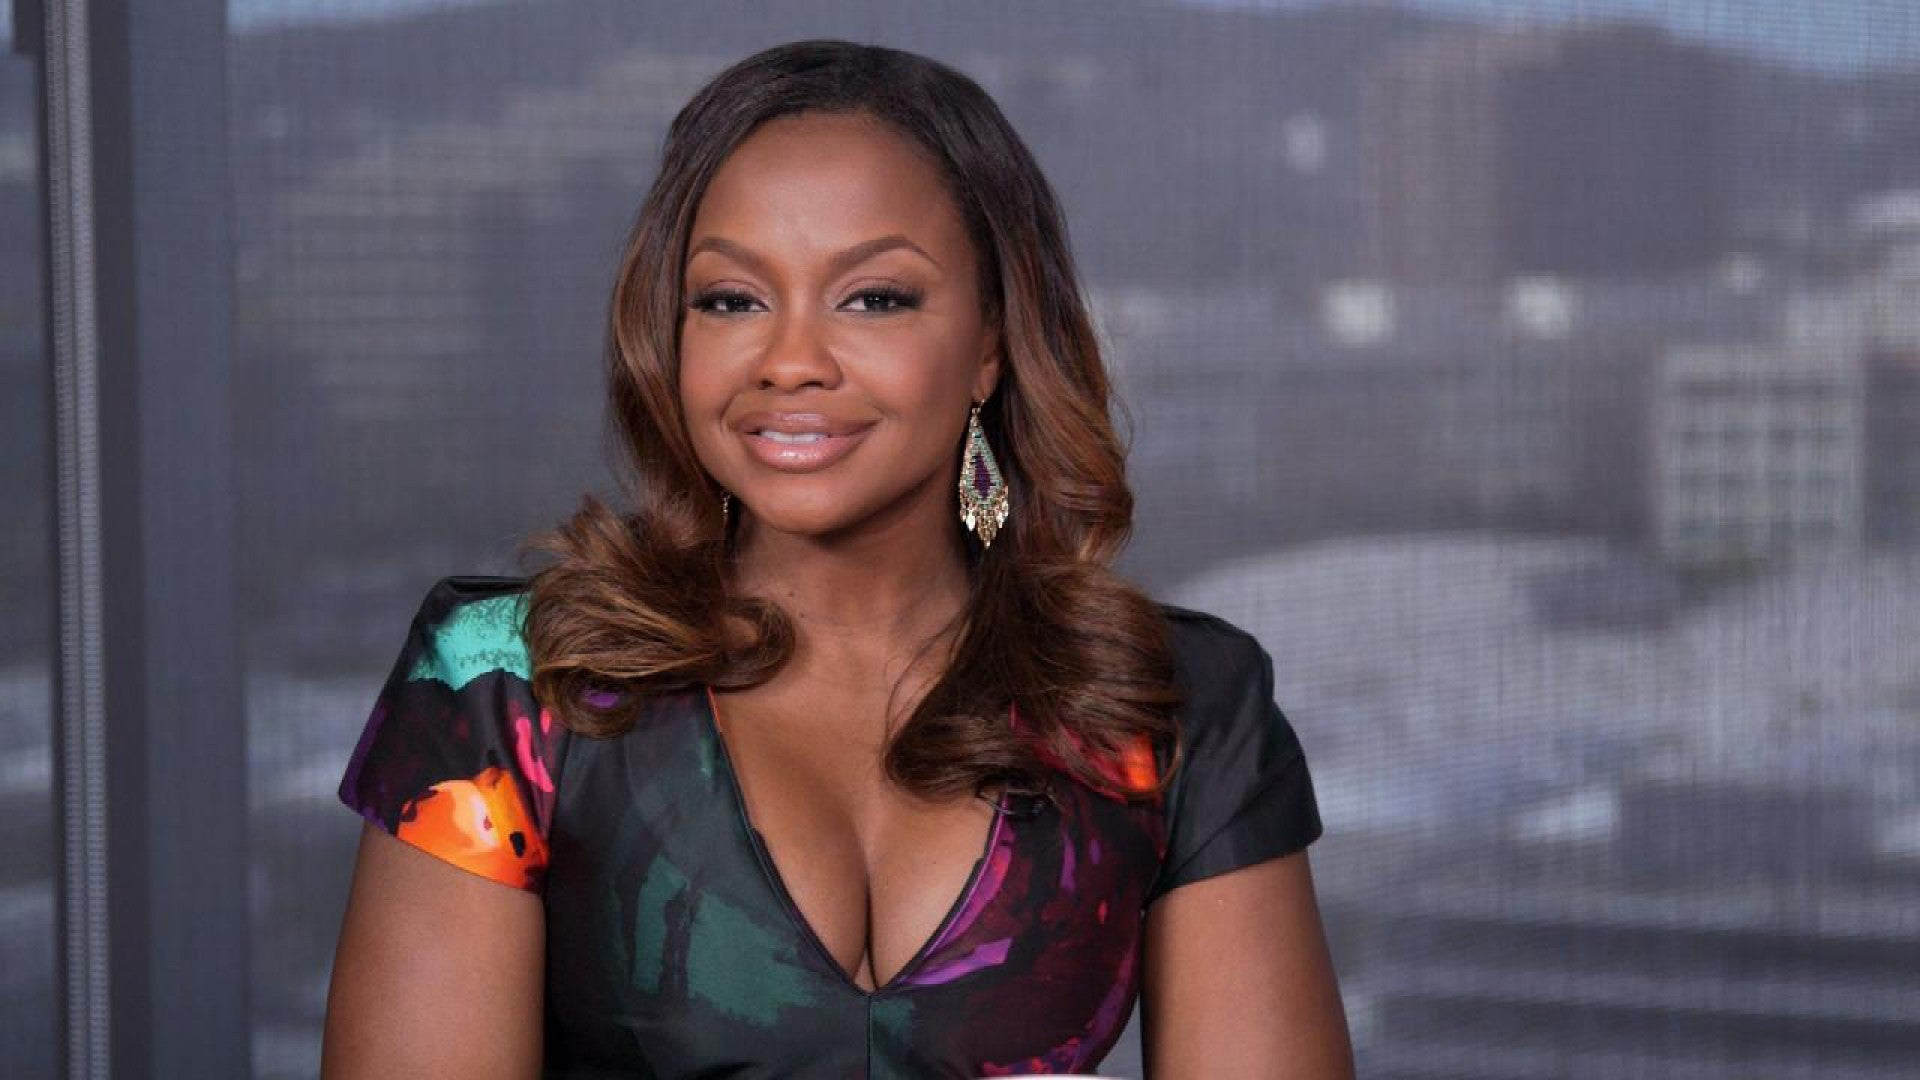 Phaedra Parks Shares A Few Words About 2020 And 2021 – See The Gorgeous Photos She Posted Along Her Message